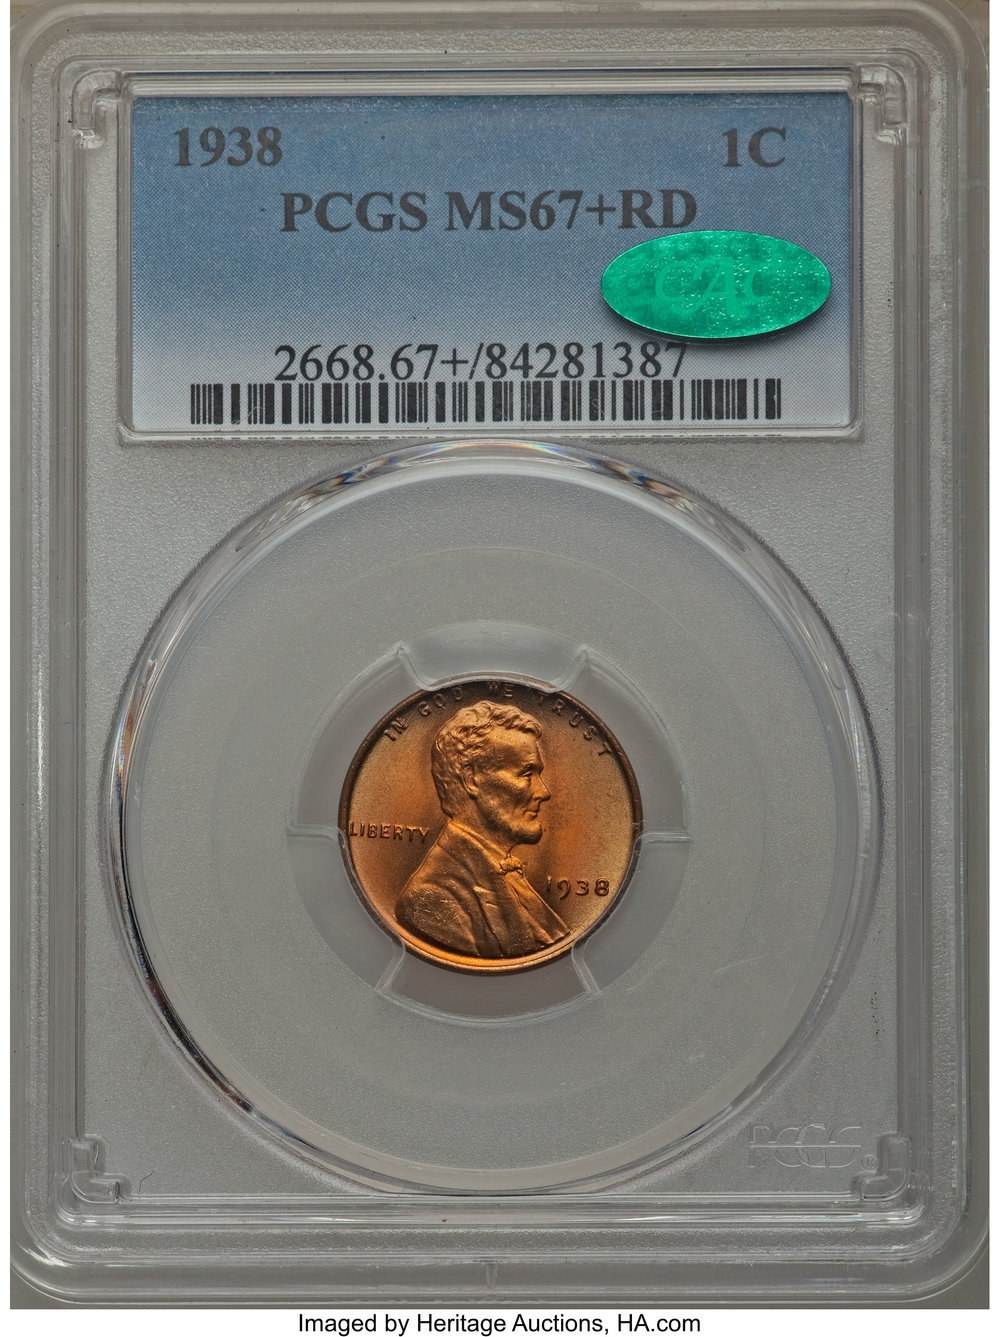 1938 MS67+RD CAC - Acquired Heritage Auctions 7/12/18. Replaces MS67 RD. Typical off color photo by HA. Fortunately a TrueView image was available.